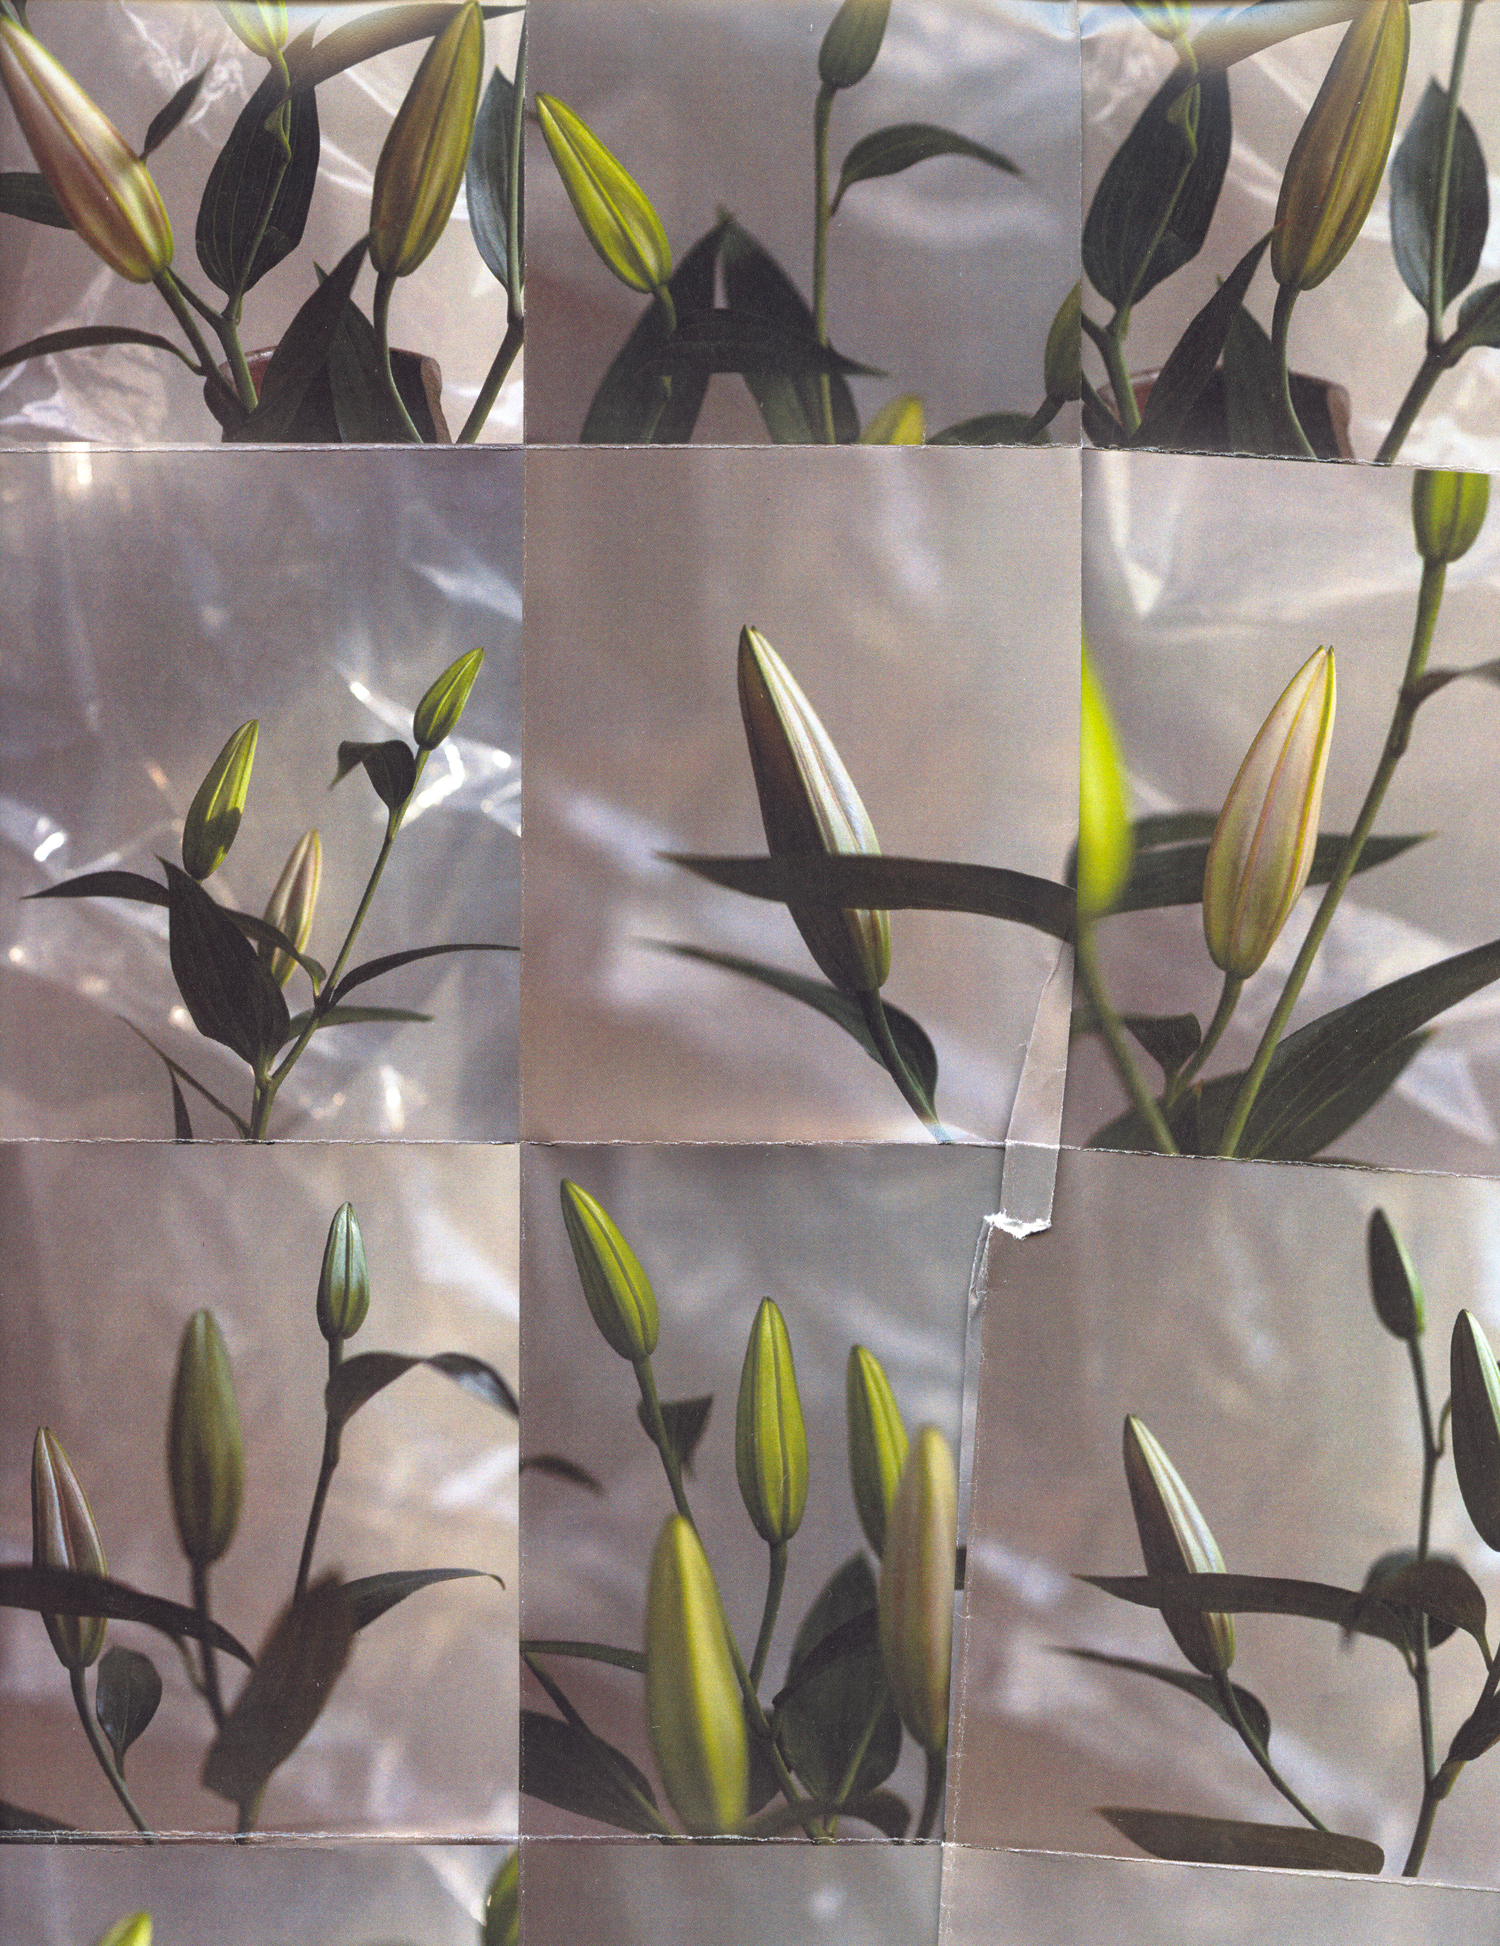 2018-01-25_5a69804d7d158_aysia-stieb-foot-tap-jaw-jerk-lillies-vinyl-flowers-grid-scan-photograph-01